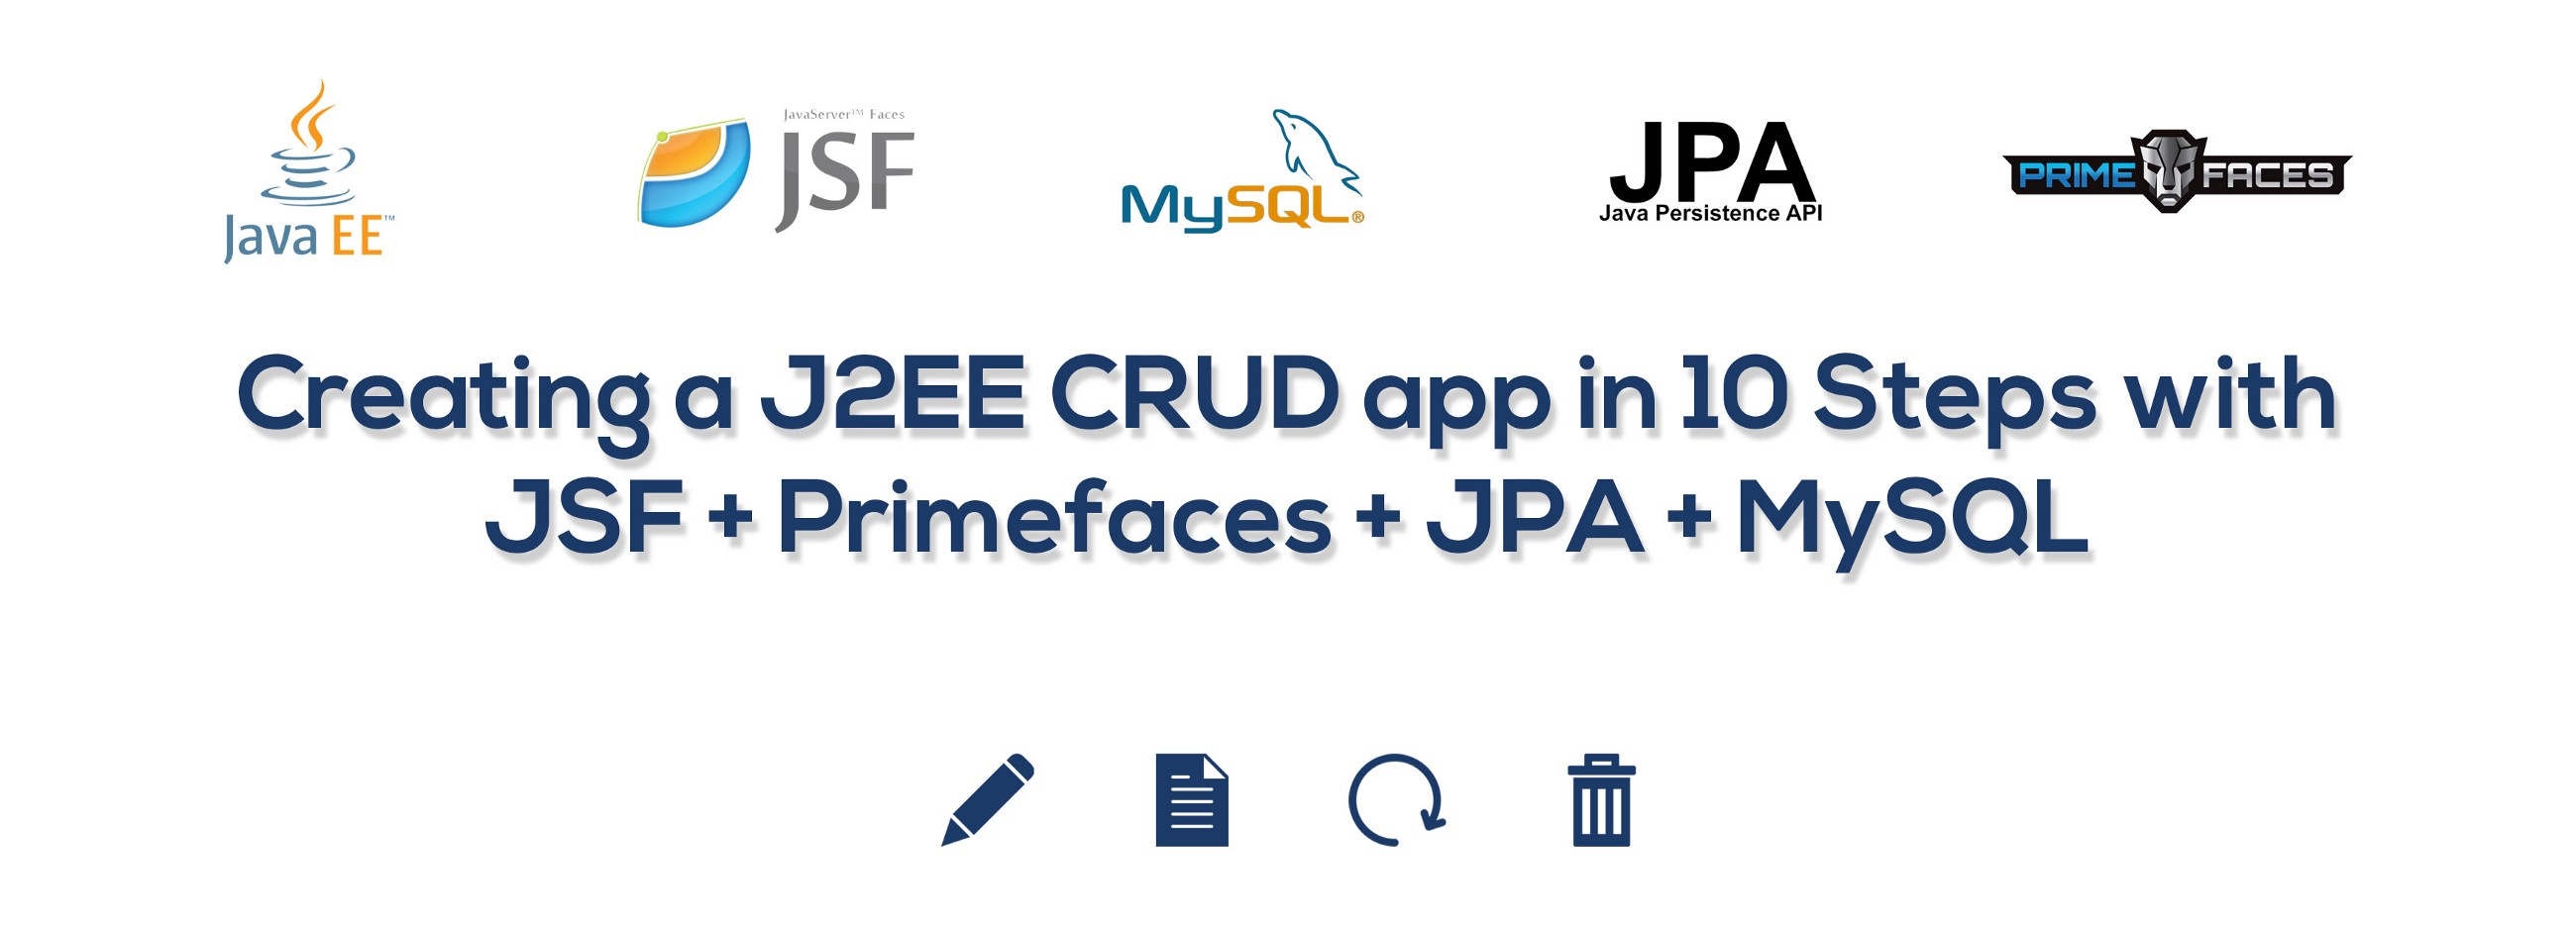 /creating-a-j2ee-crud-app-in-10-steps-with-jsf-primefaces-jpa-mysql-39a1421b8845 feature image